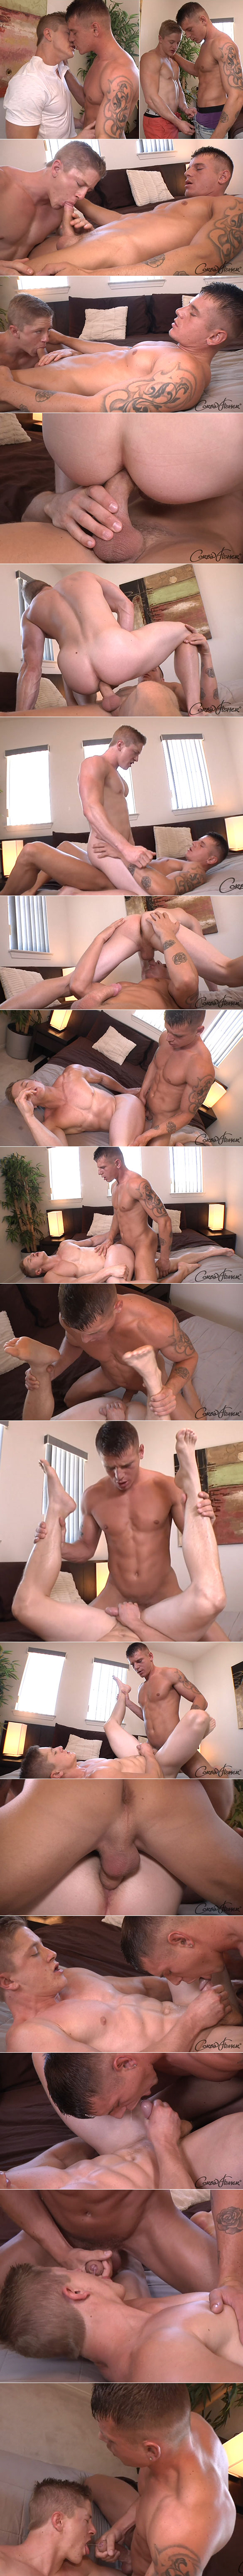 "NakedSword: Corbin Fisher's ""Collegiate Cum Swapping"""